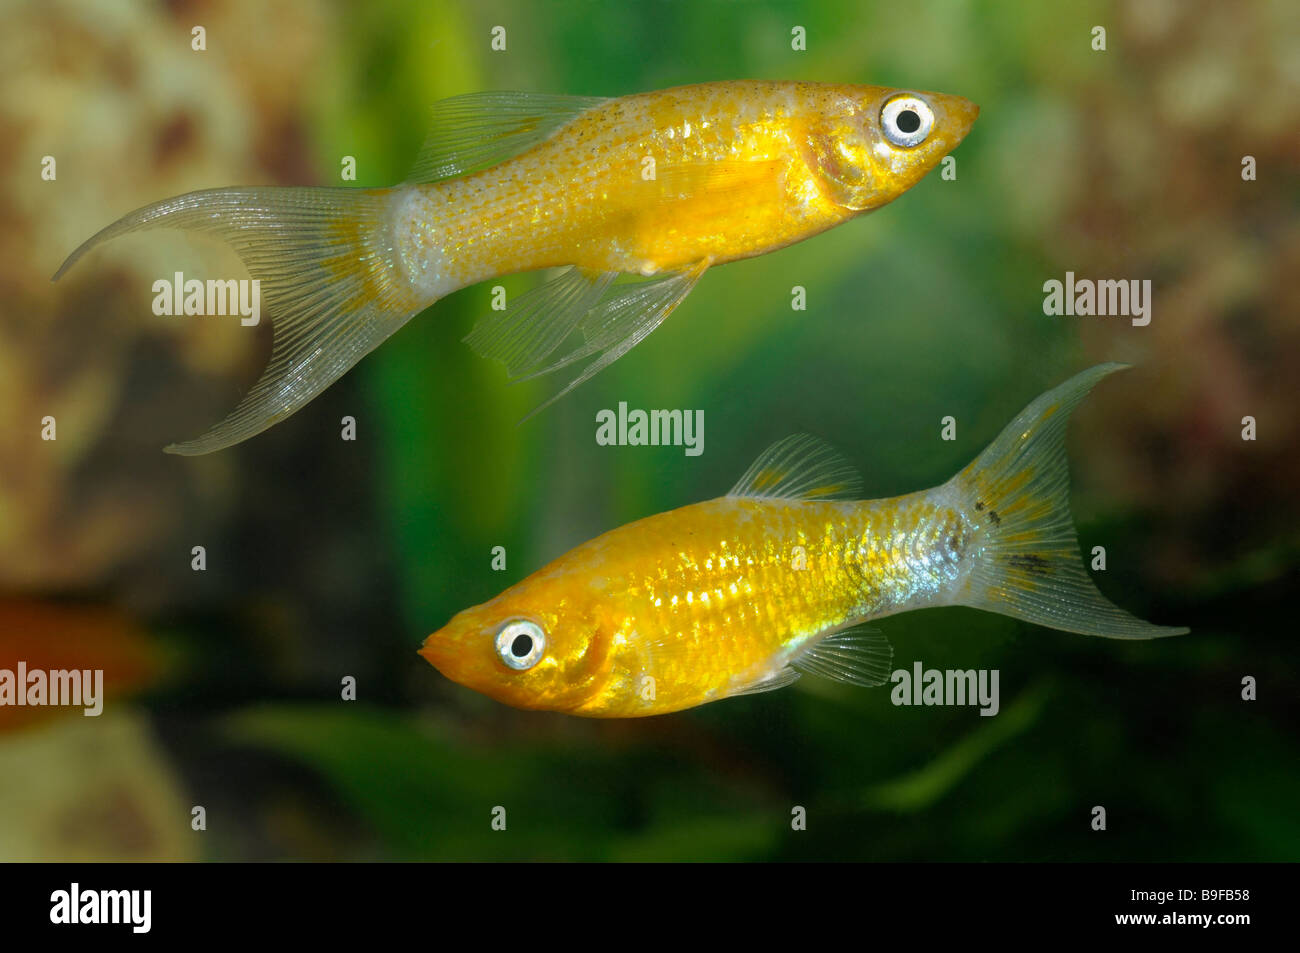 Gold Molly (Poecilia sphenops), two individuals in an aquarium - Stock Image